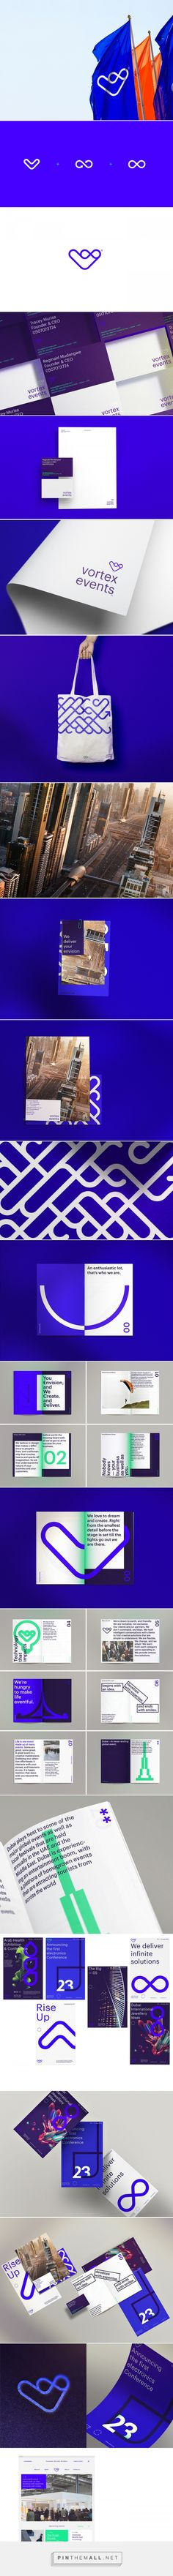 Vortex events® on Behance. - a grouped images picture - Pin Them All Branding And Packaging, Event Branding, Logo Branding, Corporate Id, Corporate Design, Business Design, Brand Identity Design, Branding Design, Web Design Mobile